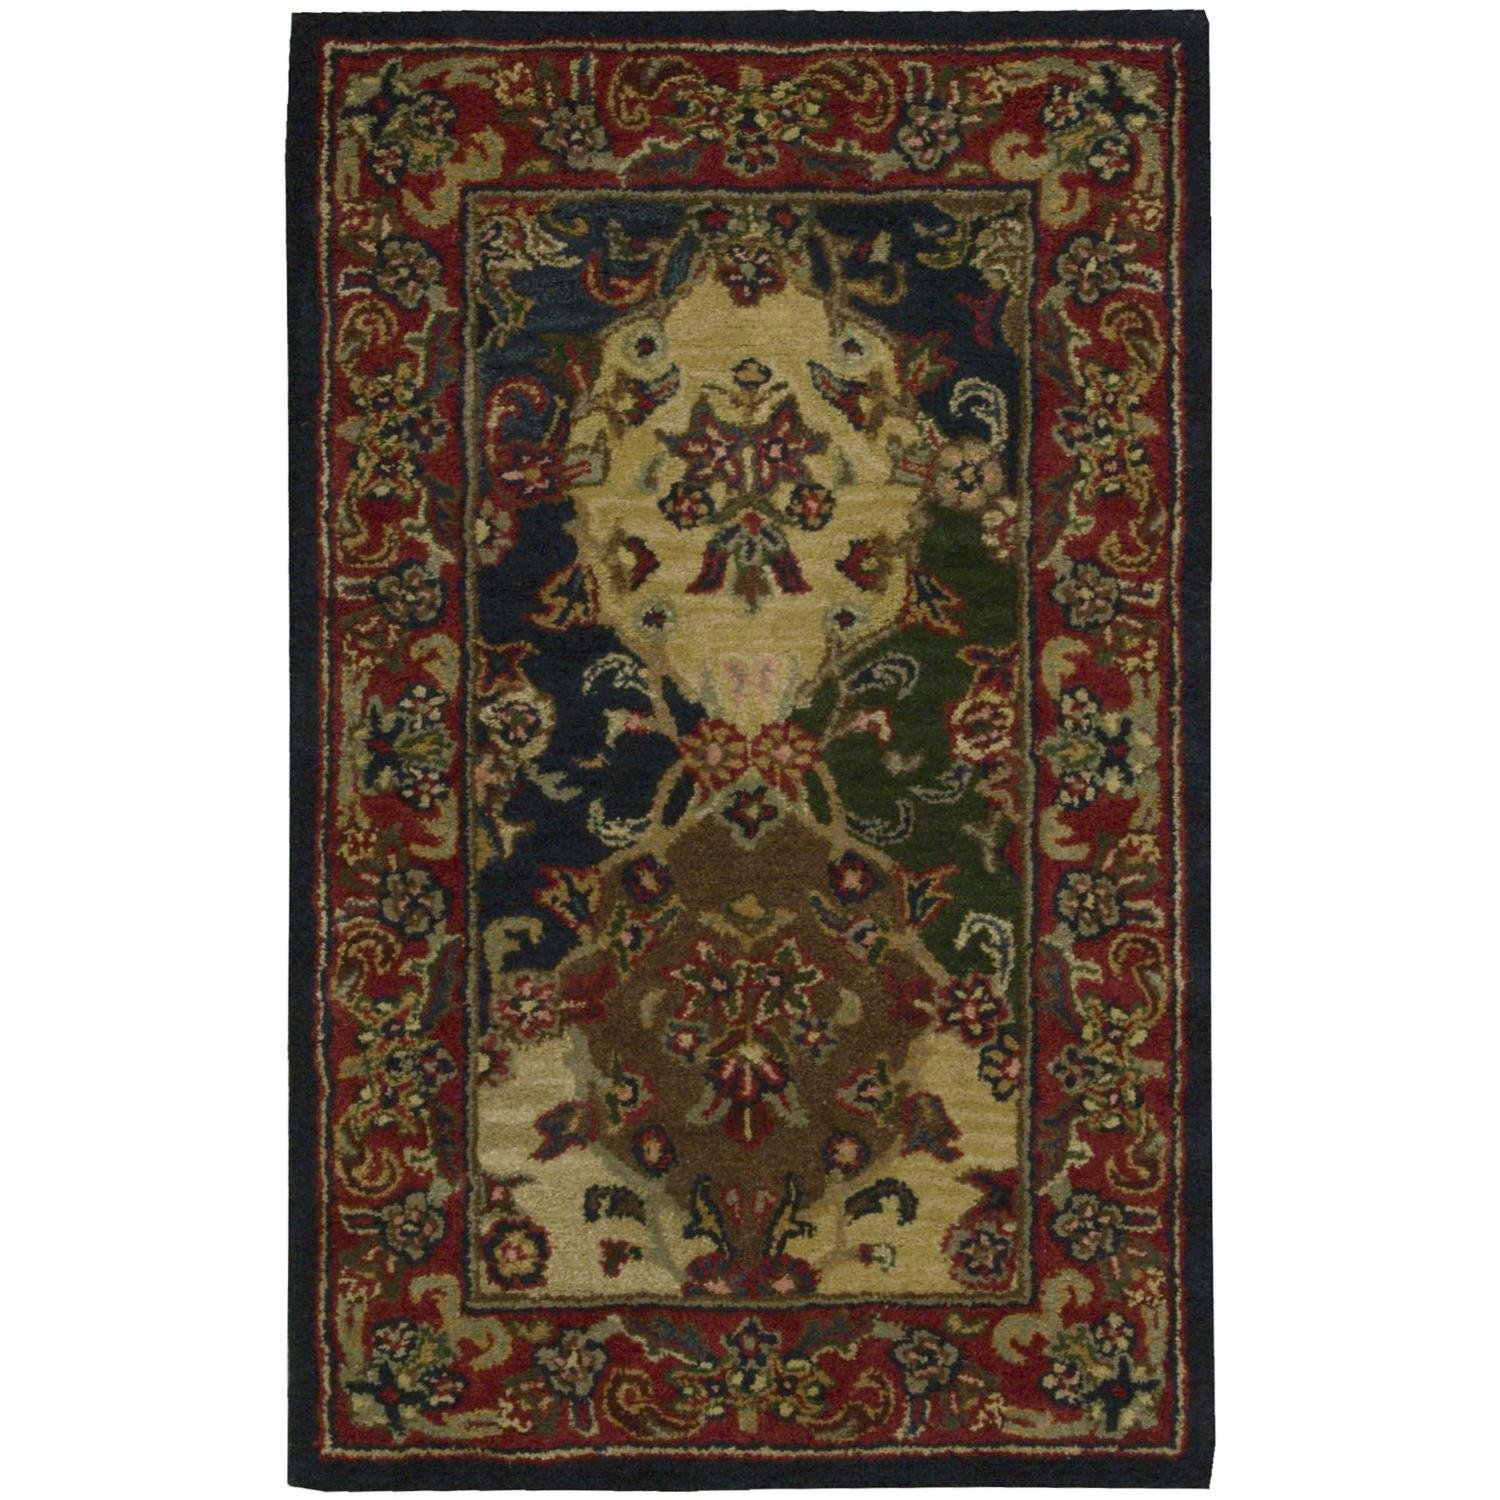 Nourison India House (IH23) Multicolor Set Area Rug, 7-Feet 3-Inches by 9-Feet 3-Inches (7'3'' x 9'3'')